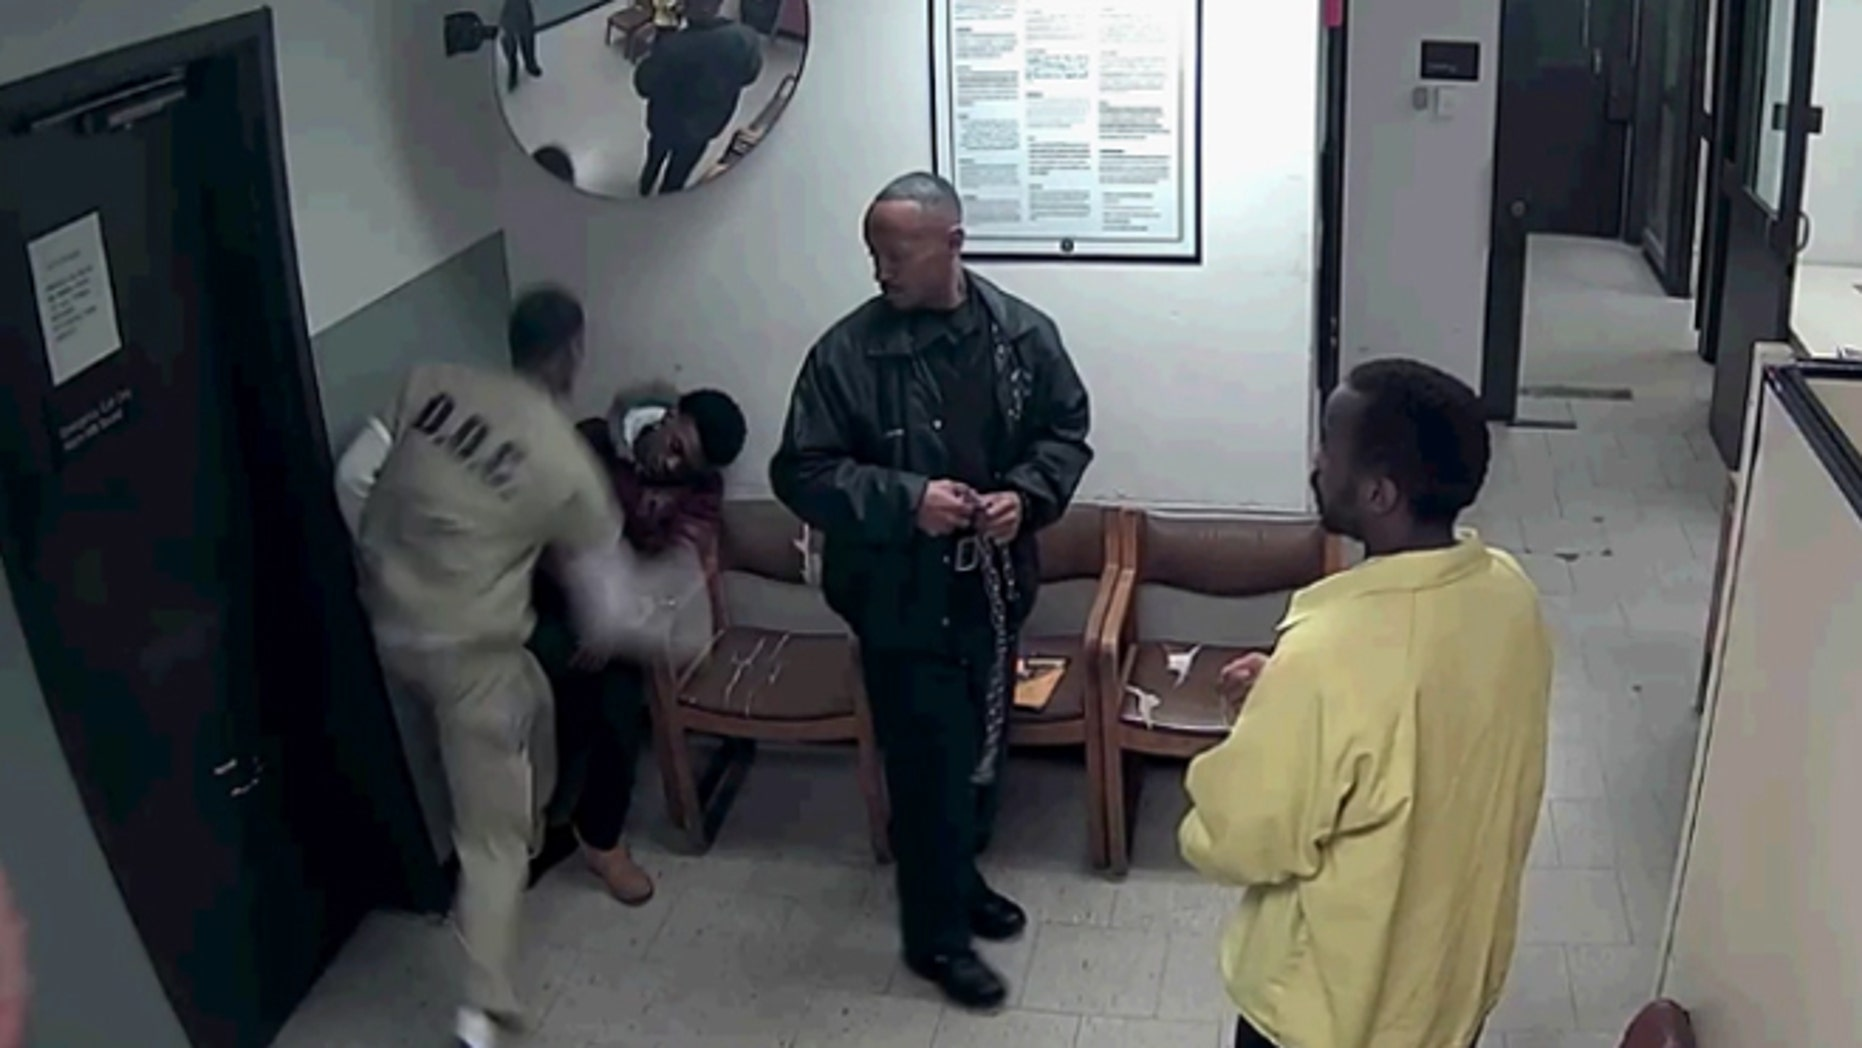 Screen grab from video showing Antwan Jones, 19, being attacked in a Chicago courthouse lockup Wednesday.